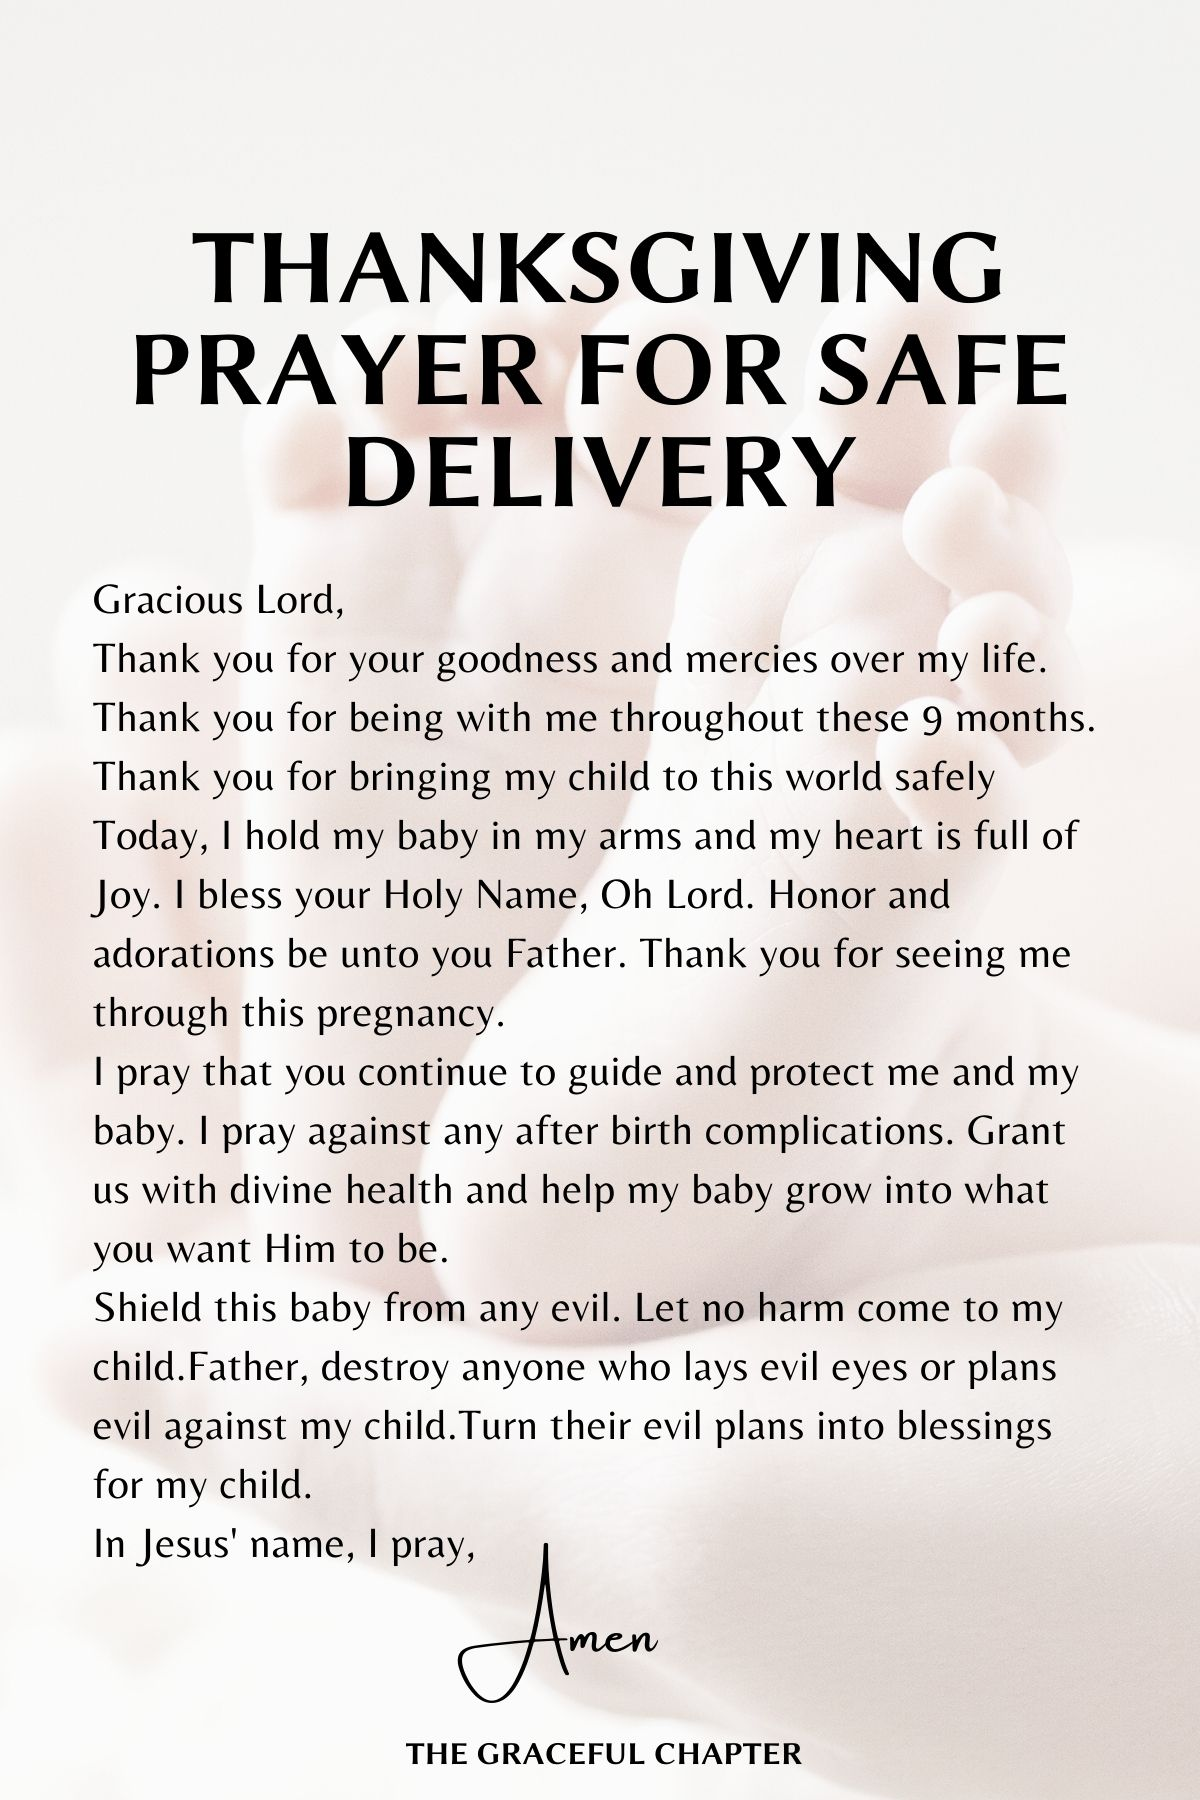 Thanksgiving prayer for safe delivery